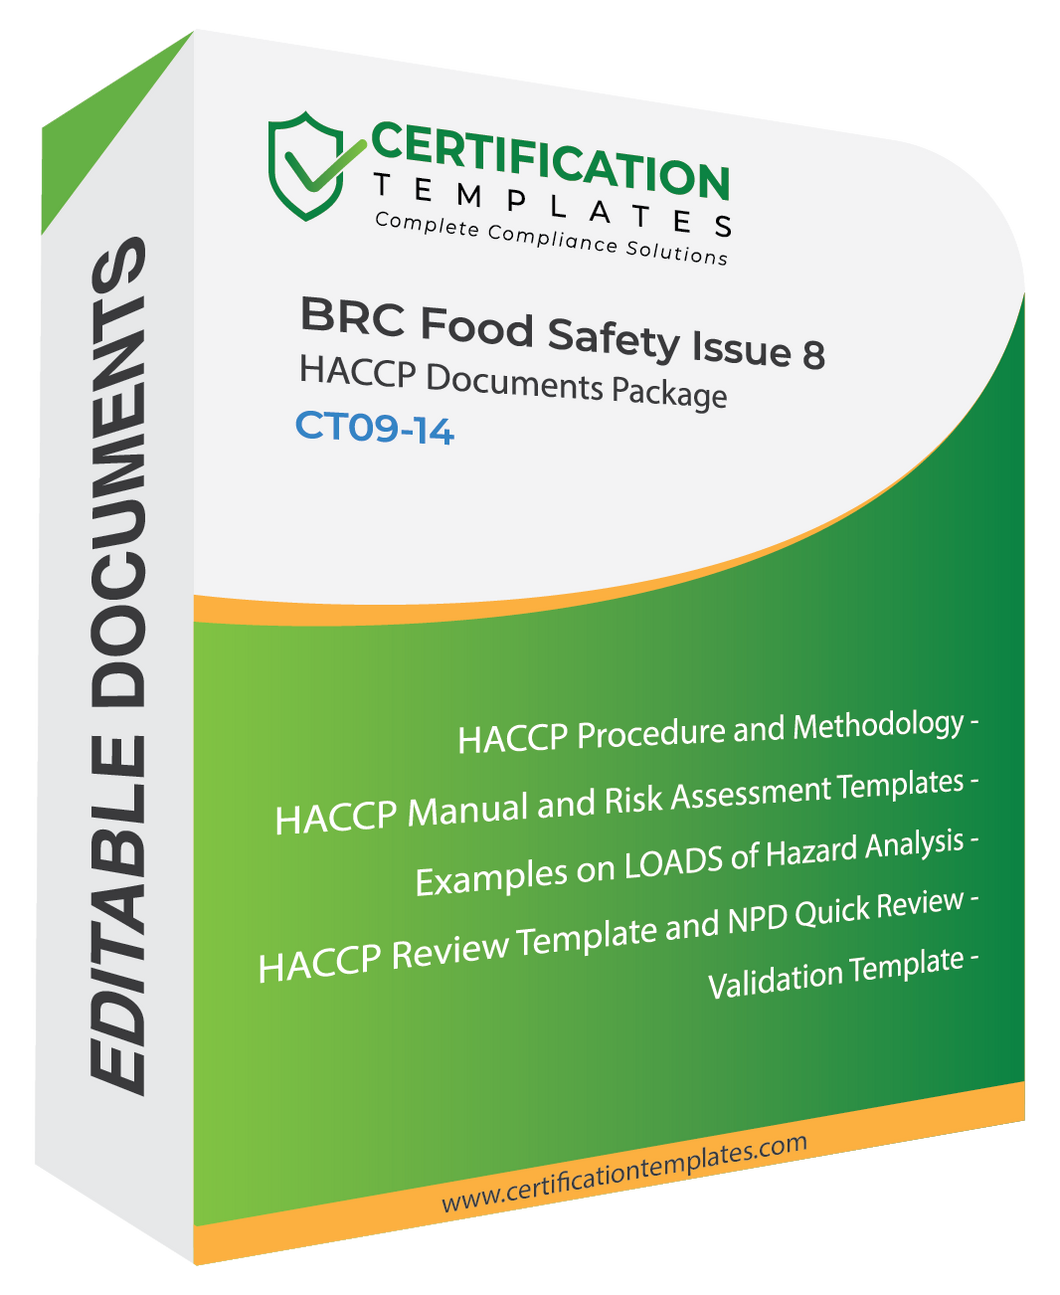 HACCP Document